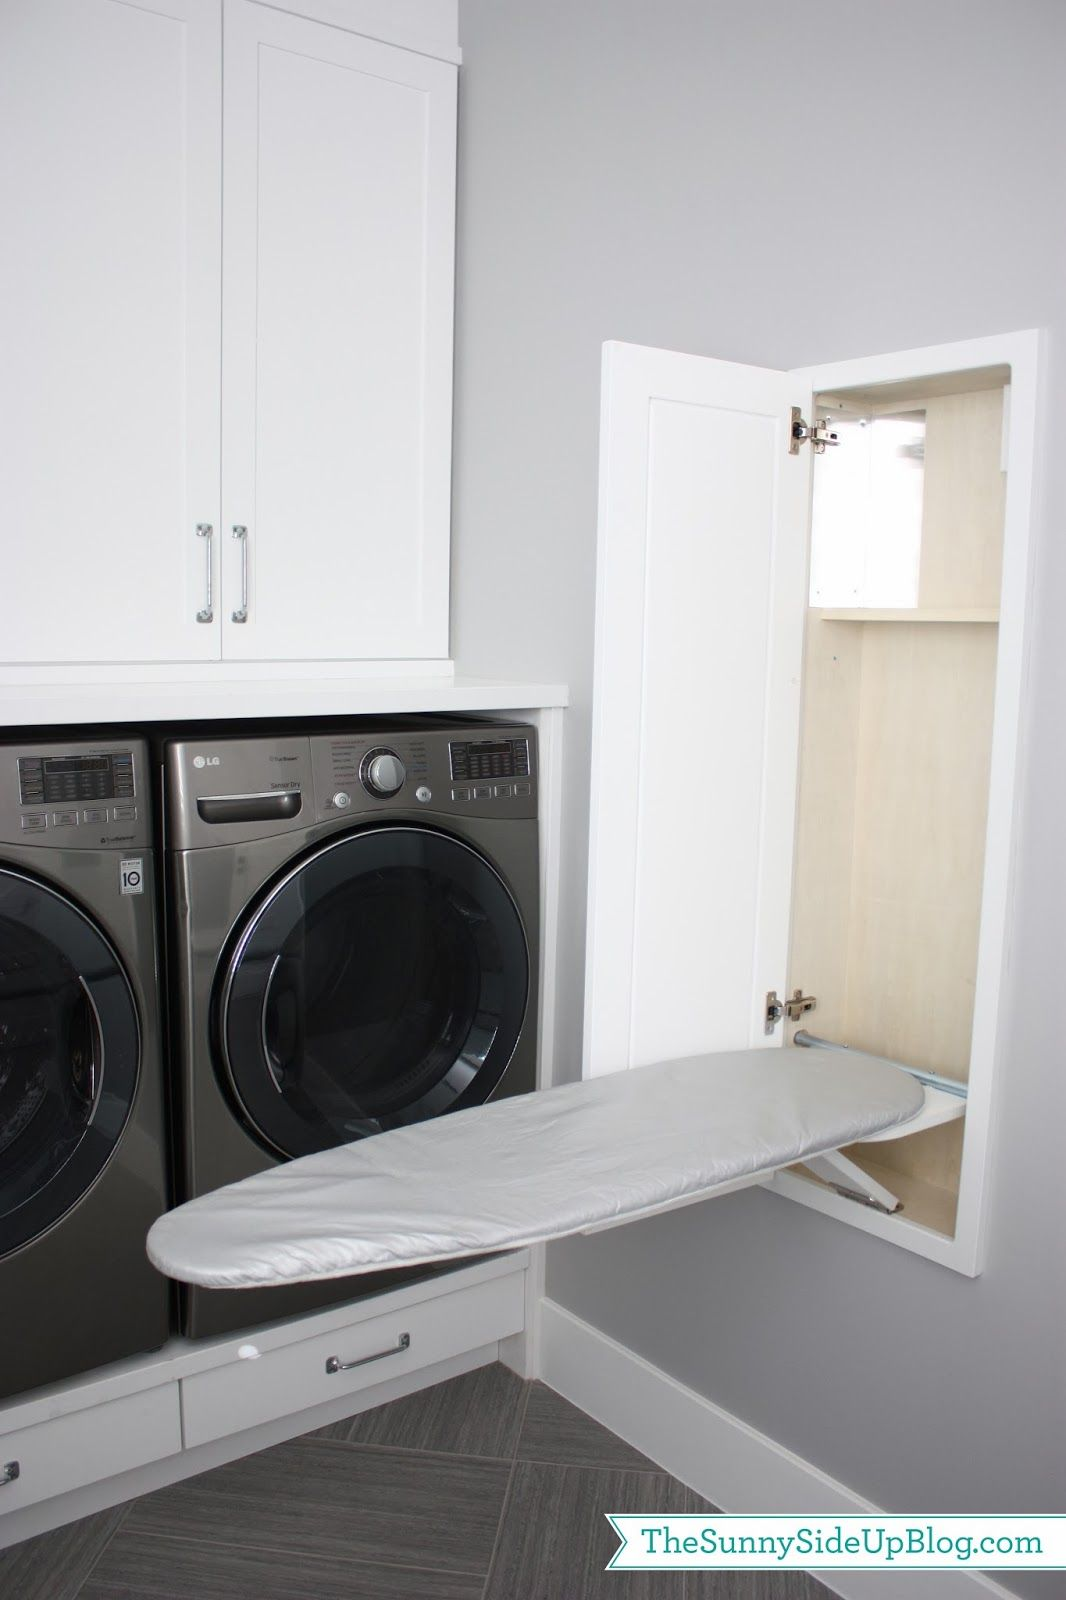 Downstairs Laundry Room - The Sunny Side Up Blog  Laundry room